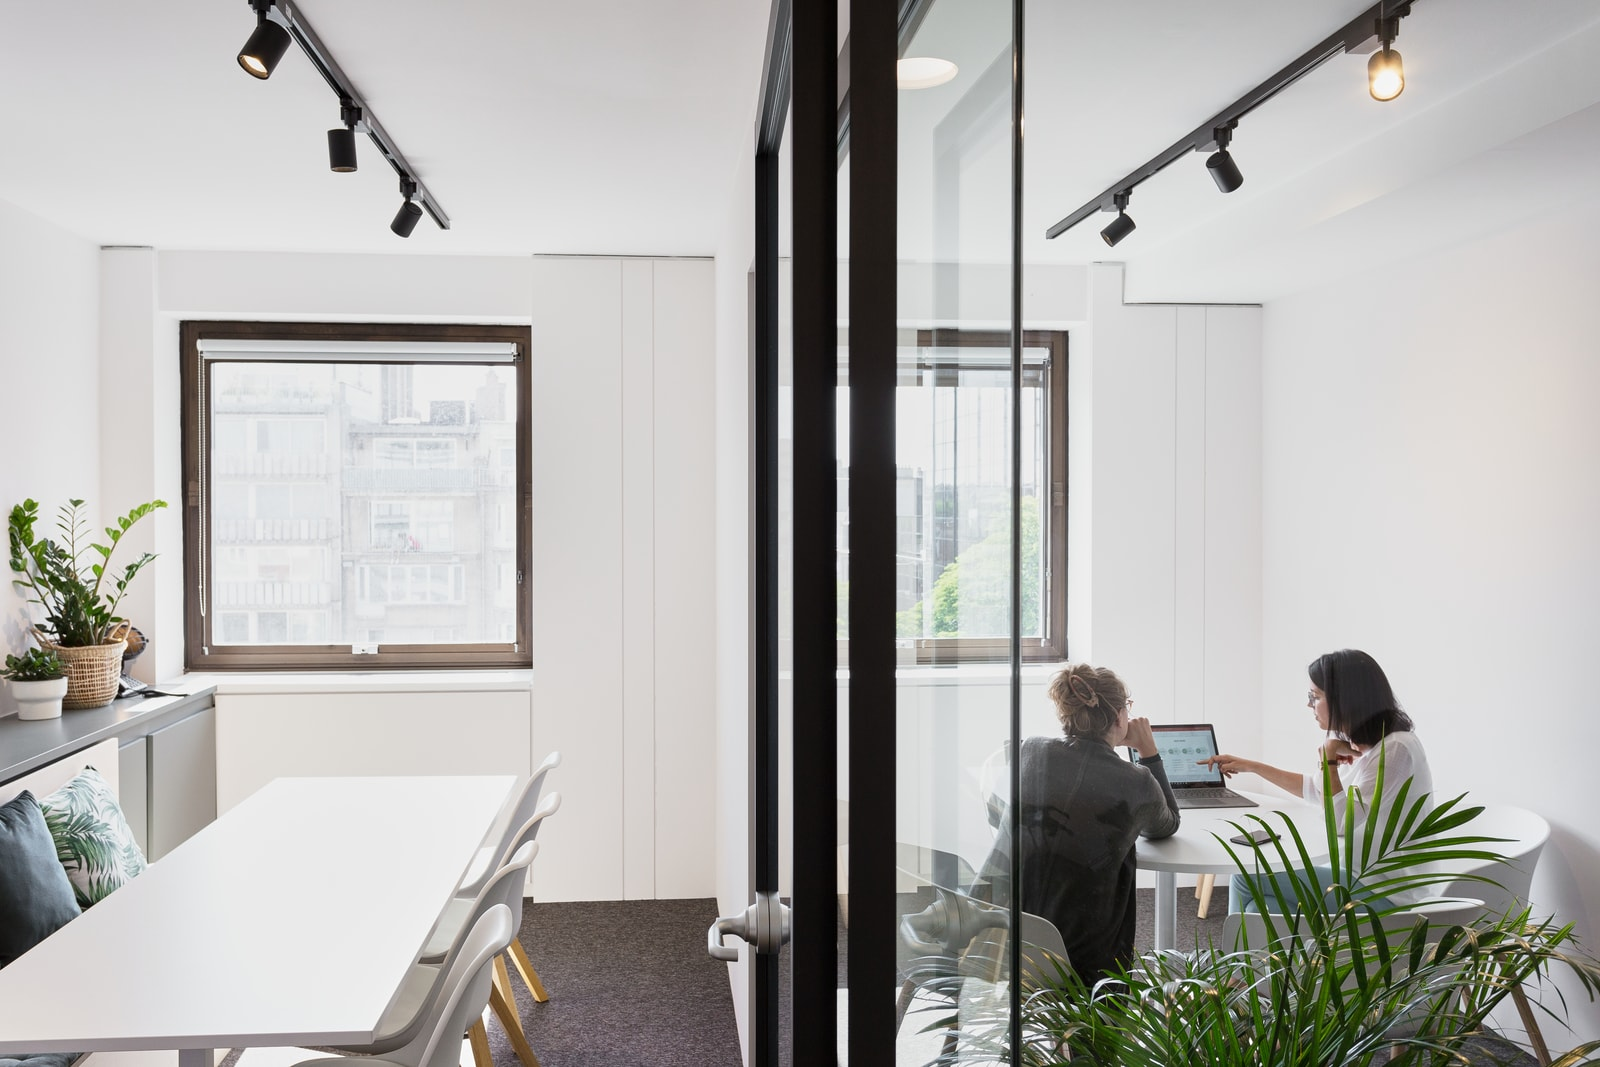 Meetingrooms te huur in Brussel